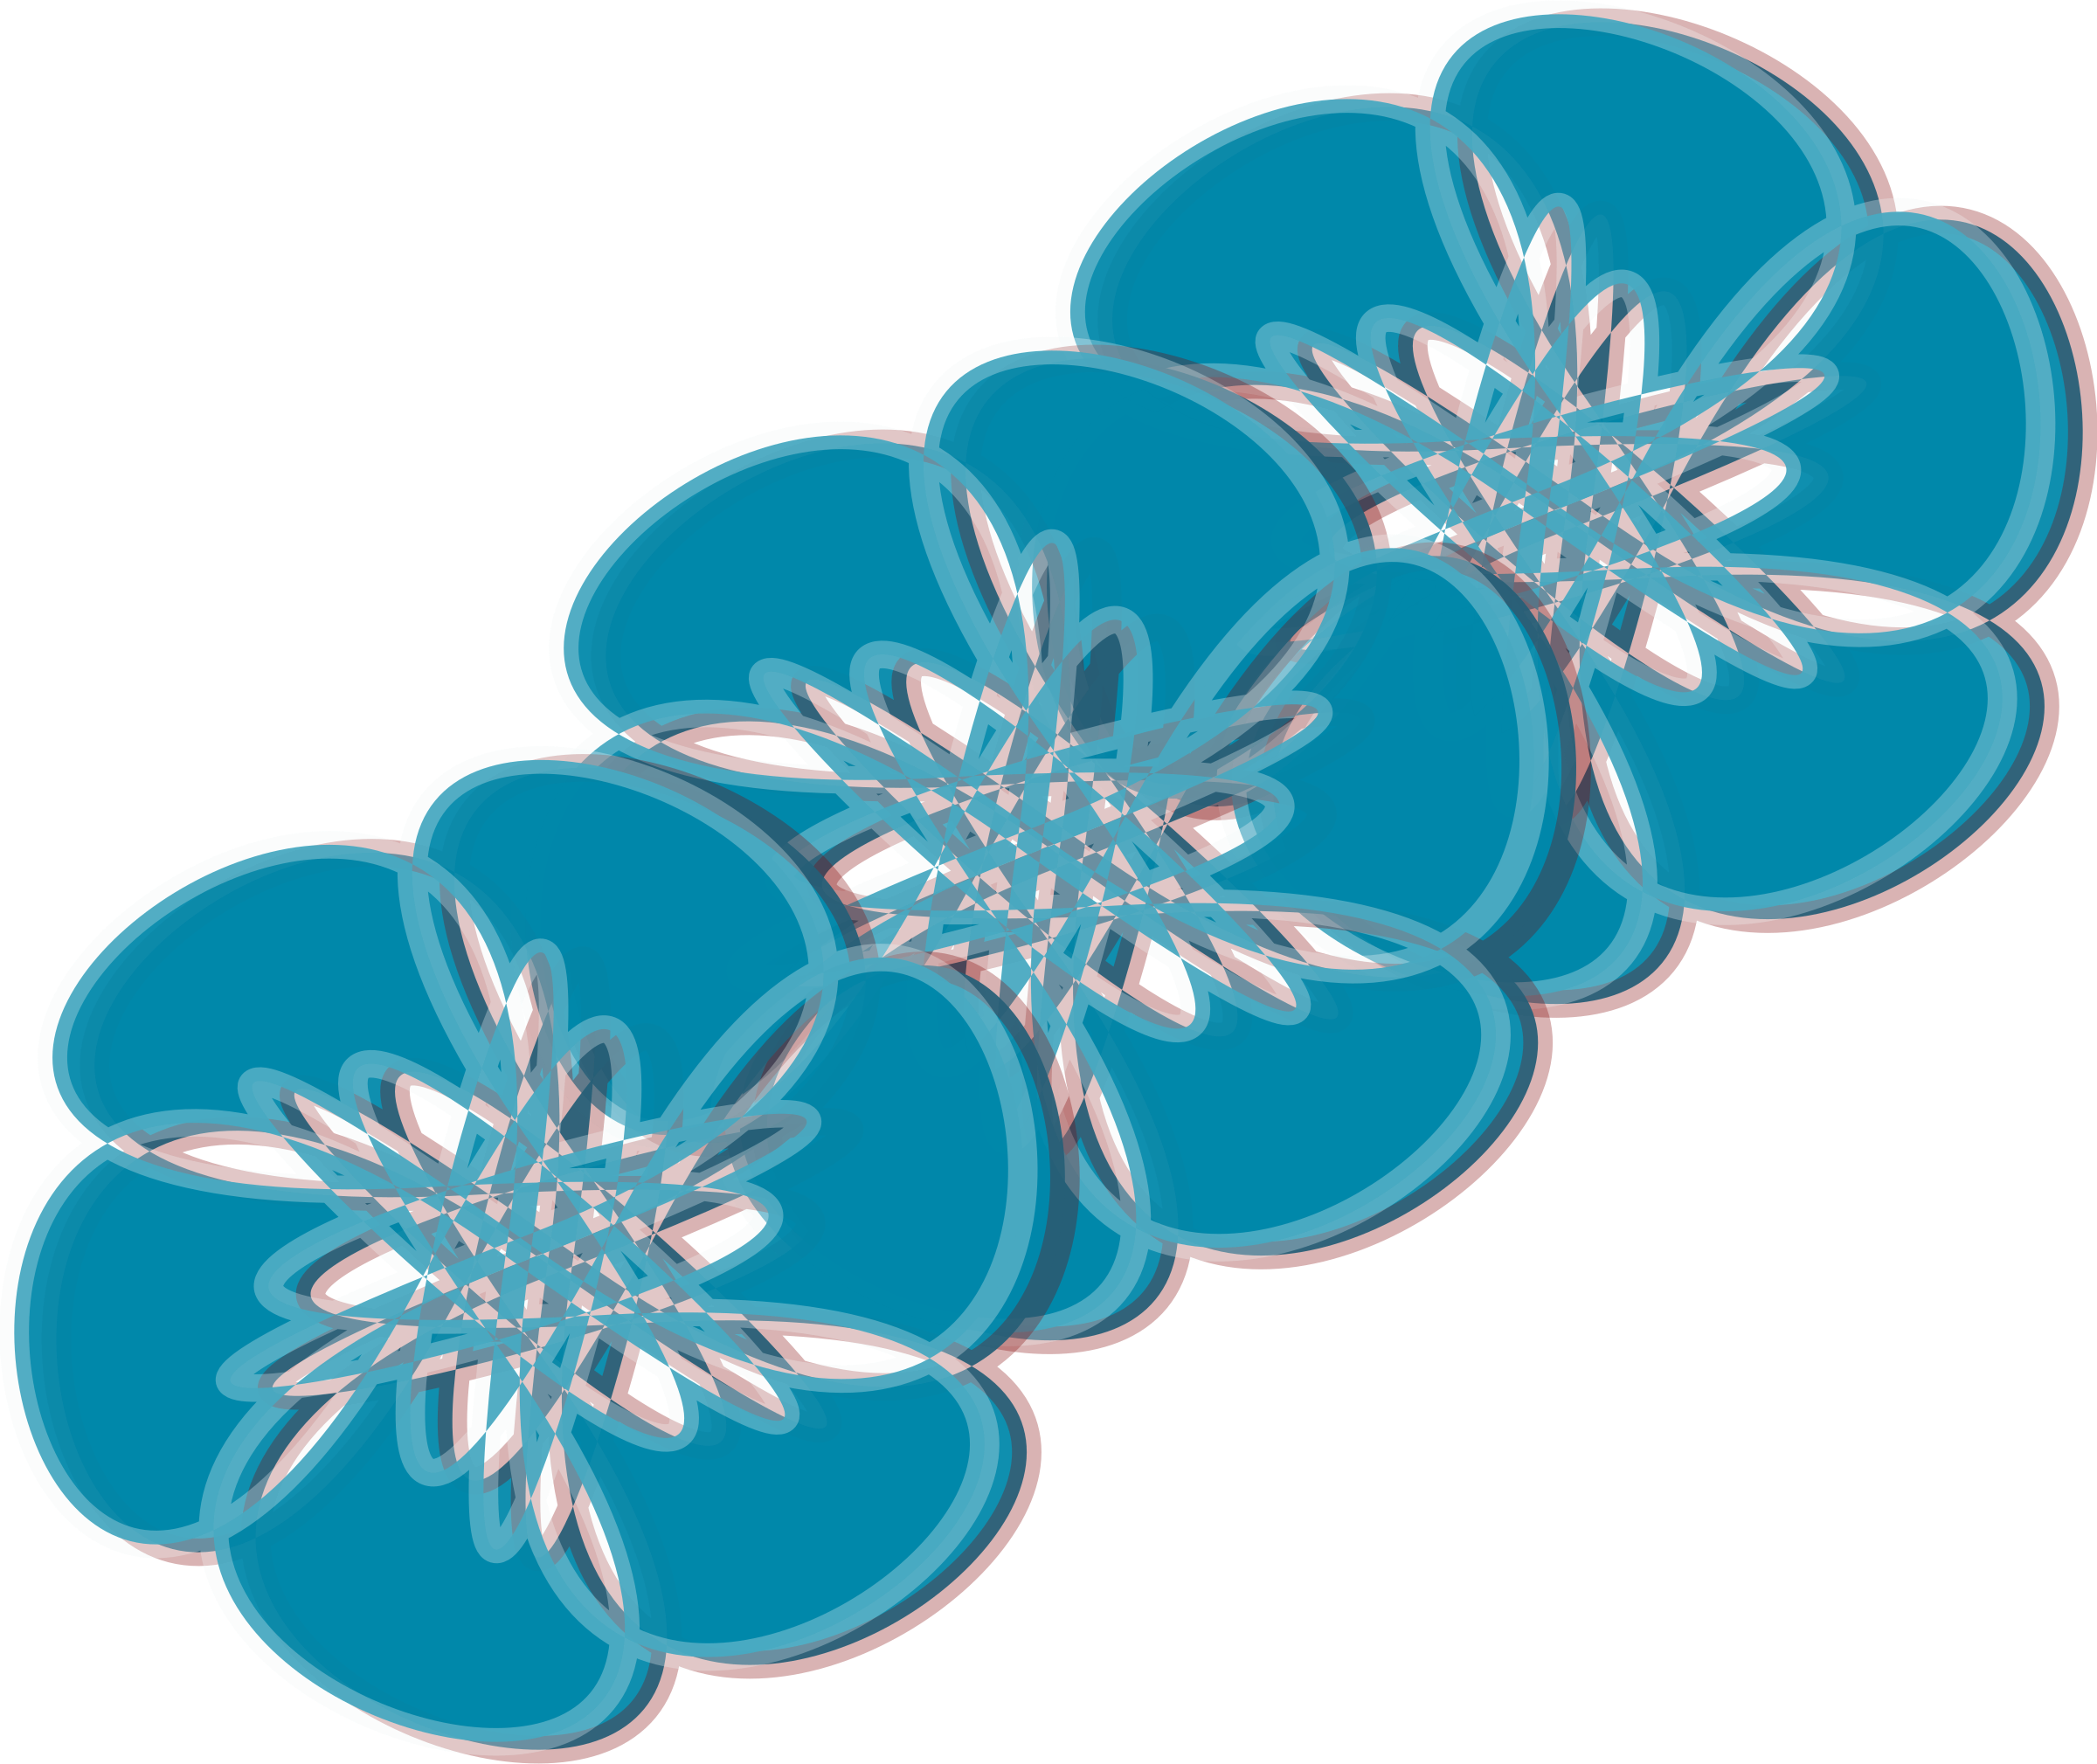 Blue Flower clipart teal flower Blue flowers flowers Clipart blue